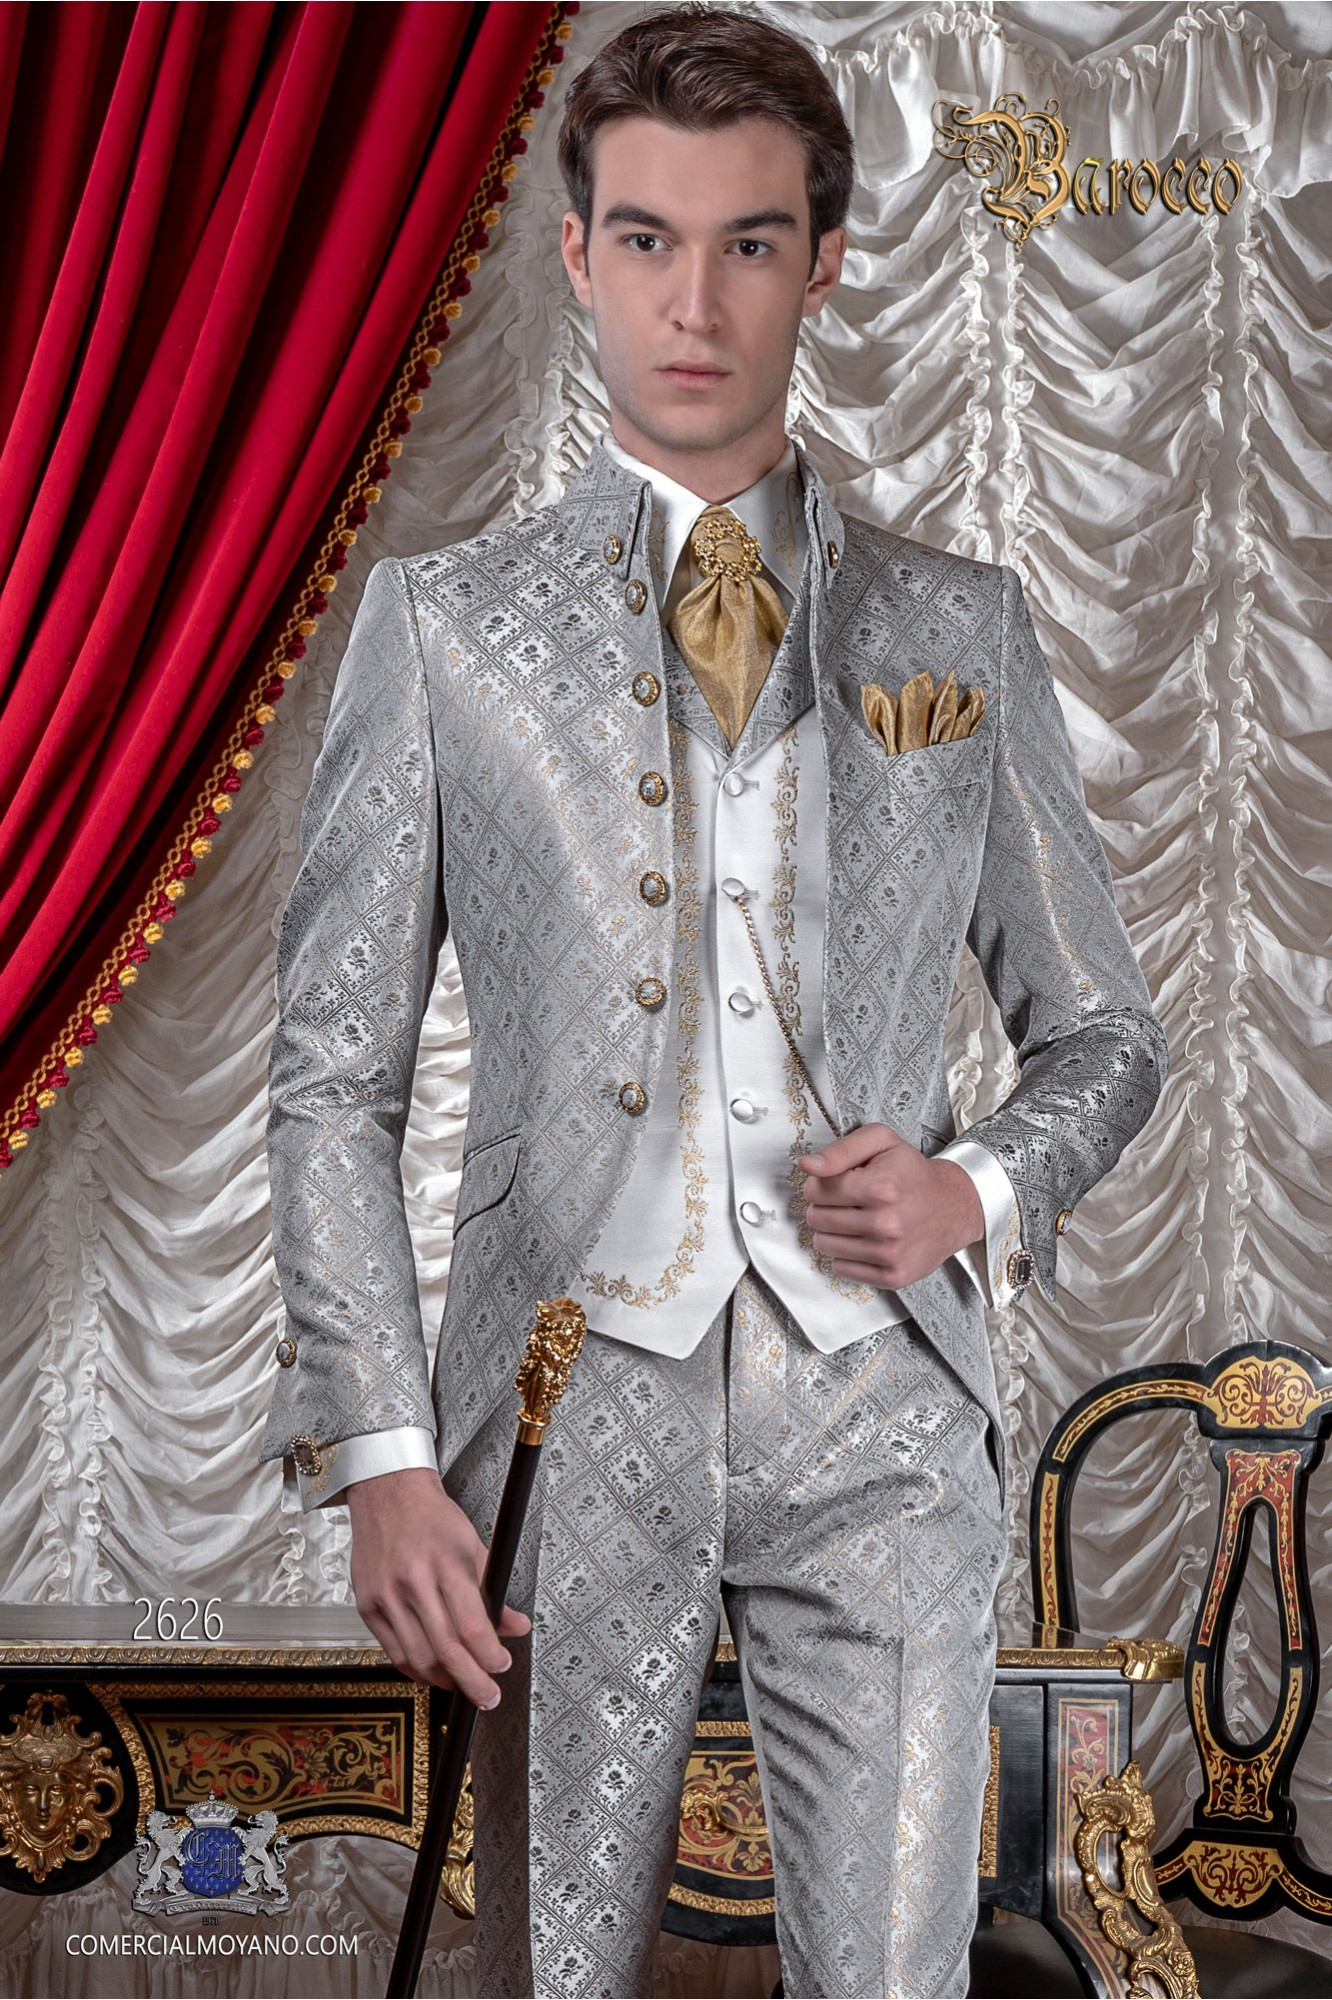 ed8636fdf2a0a1 Mens Vintage frock coat in gray silver-gold jacquard fabric